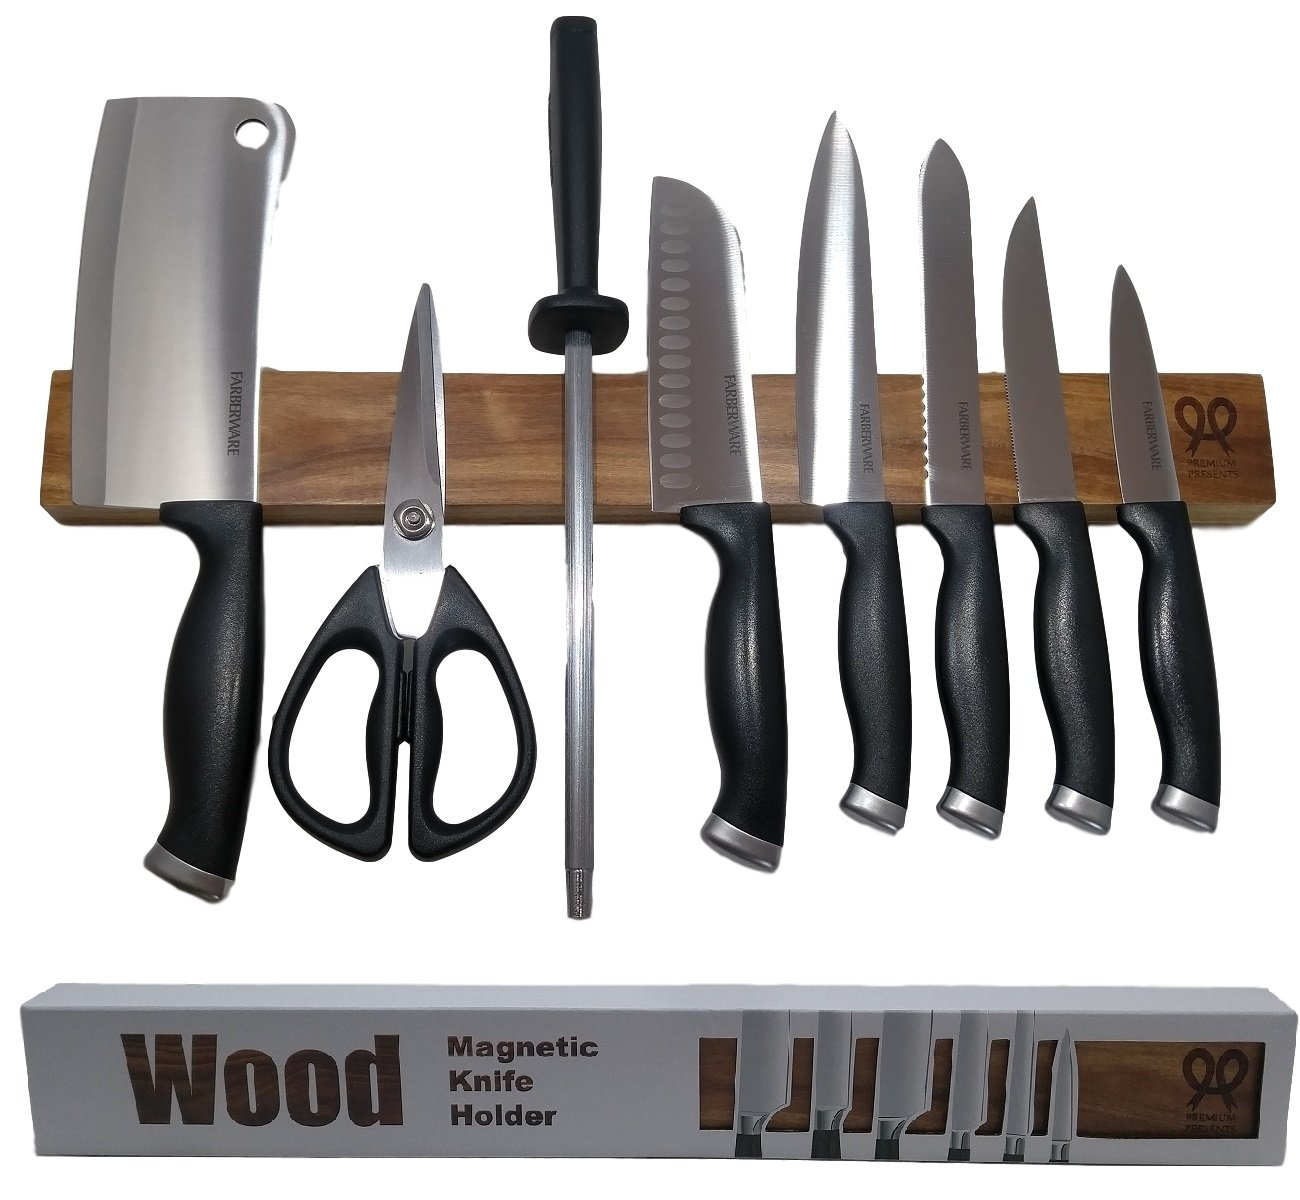 Attirant Get Quotations · Walnut Wood Magnetic Knife Strip. Replace Knife Block With  This Magnetic Knife Holder. Great